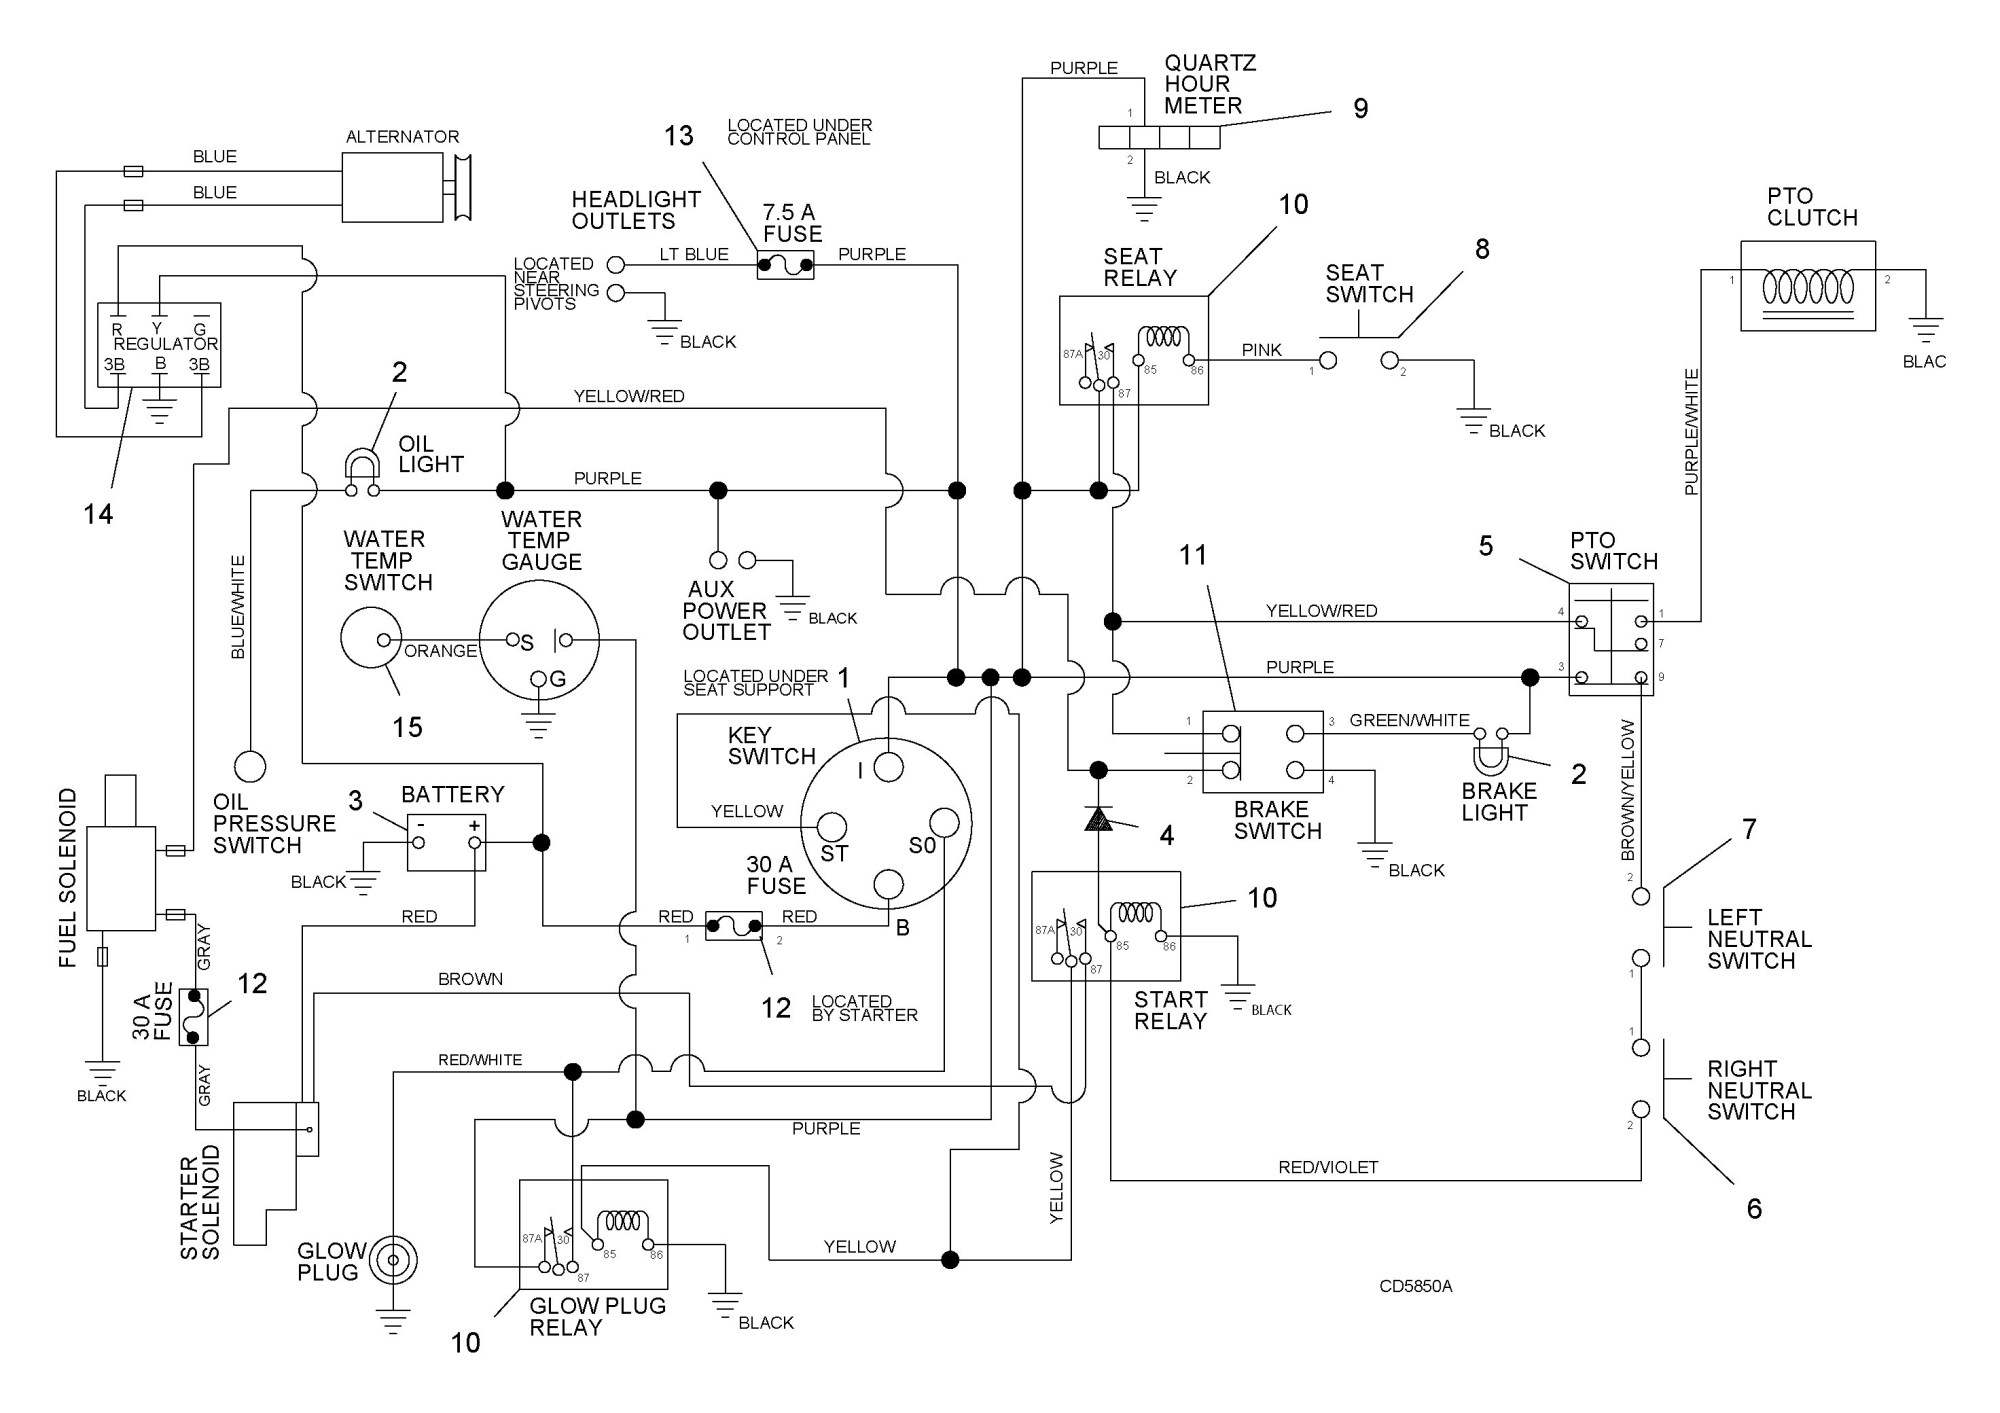 hight resolution of kubota rtv 1100 wiring diagram trusted wiring diagramkubota wiring diagrams wiring diagram todays kubota rtv 1100